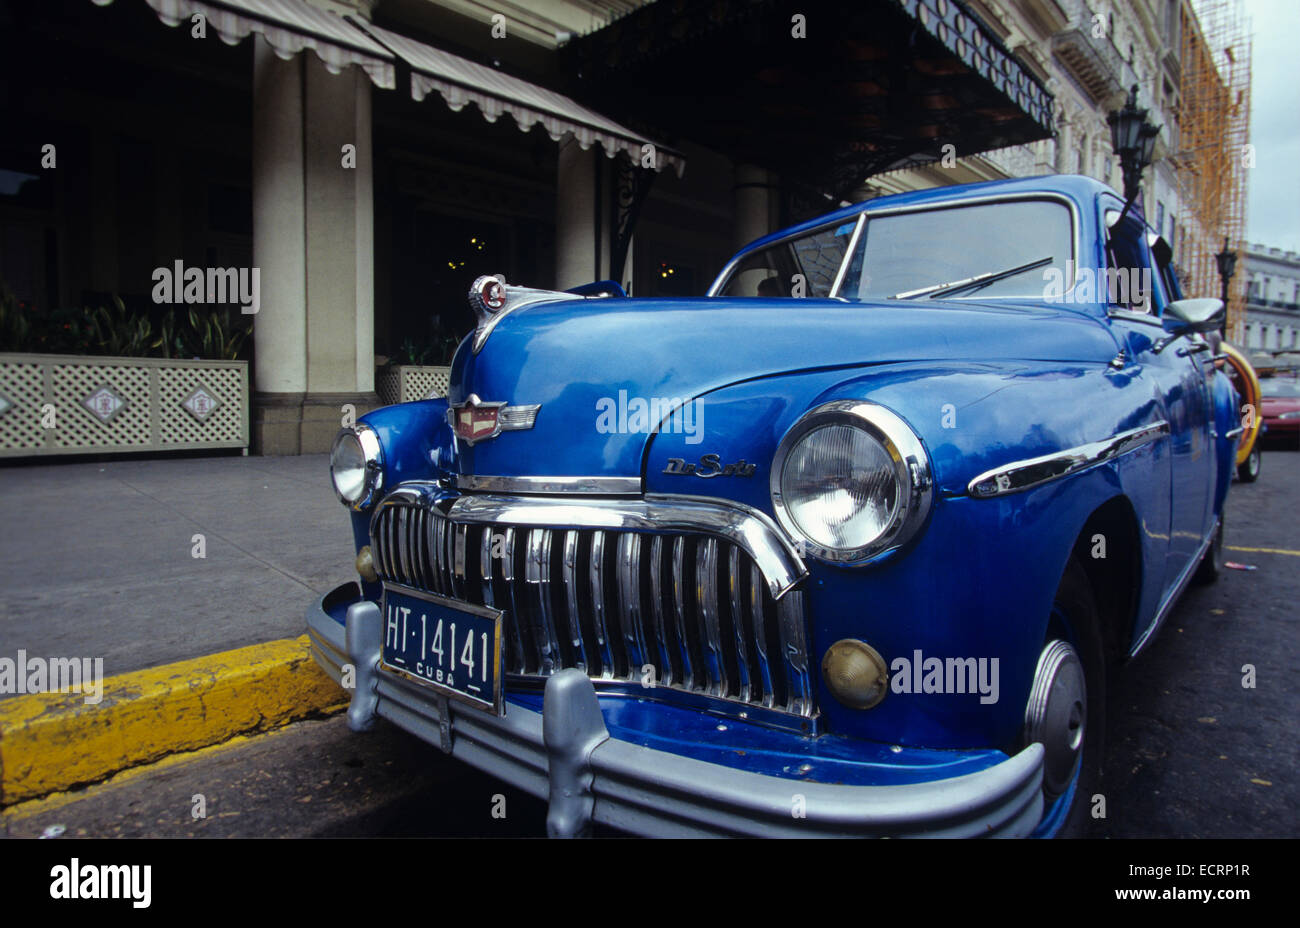 vintage american cars from the 1940s and 50s still roam the streets of havana